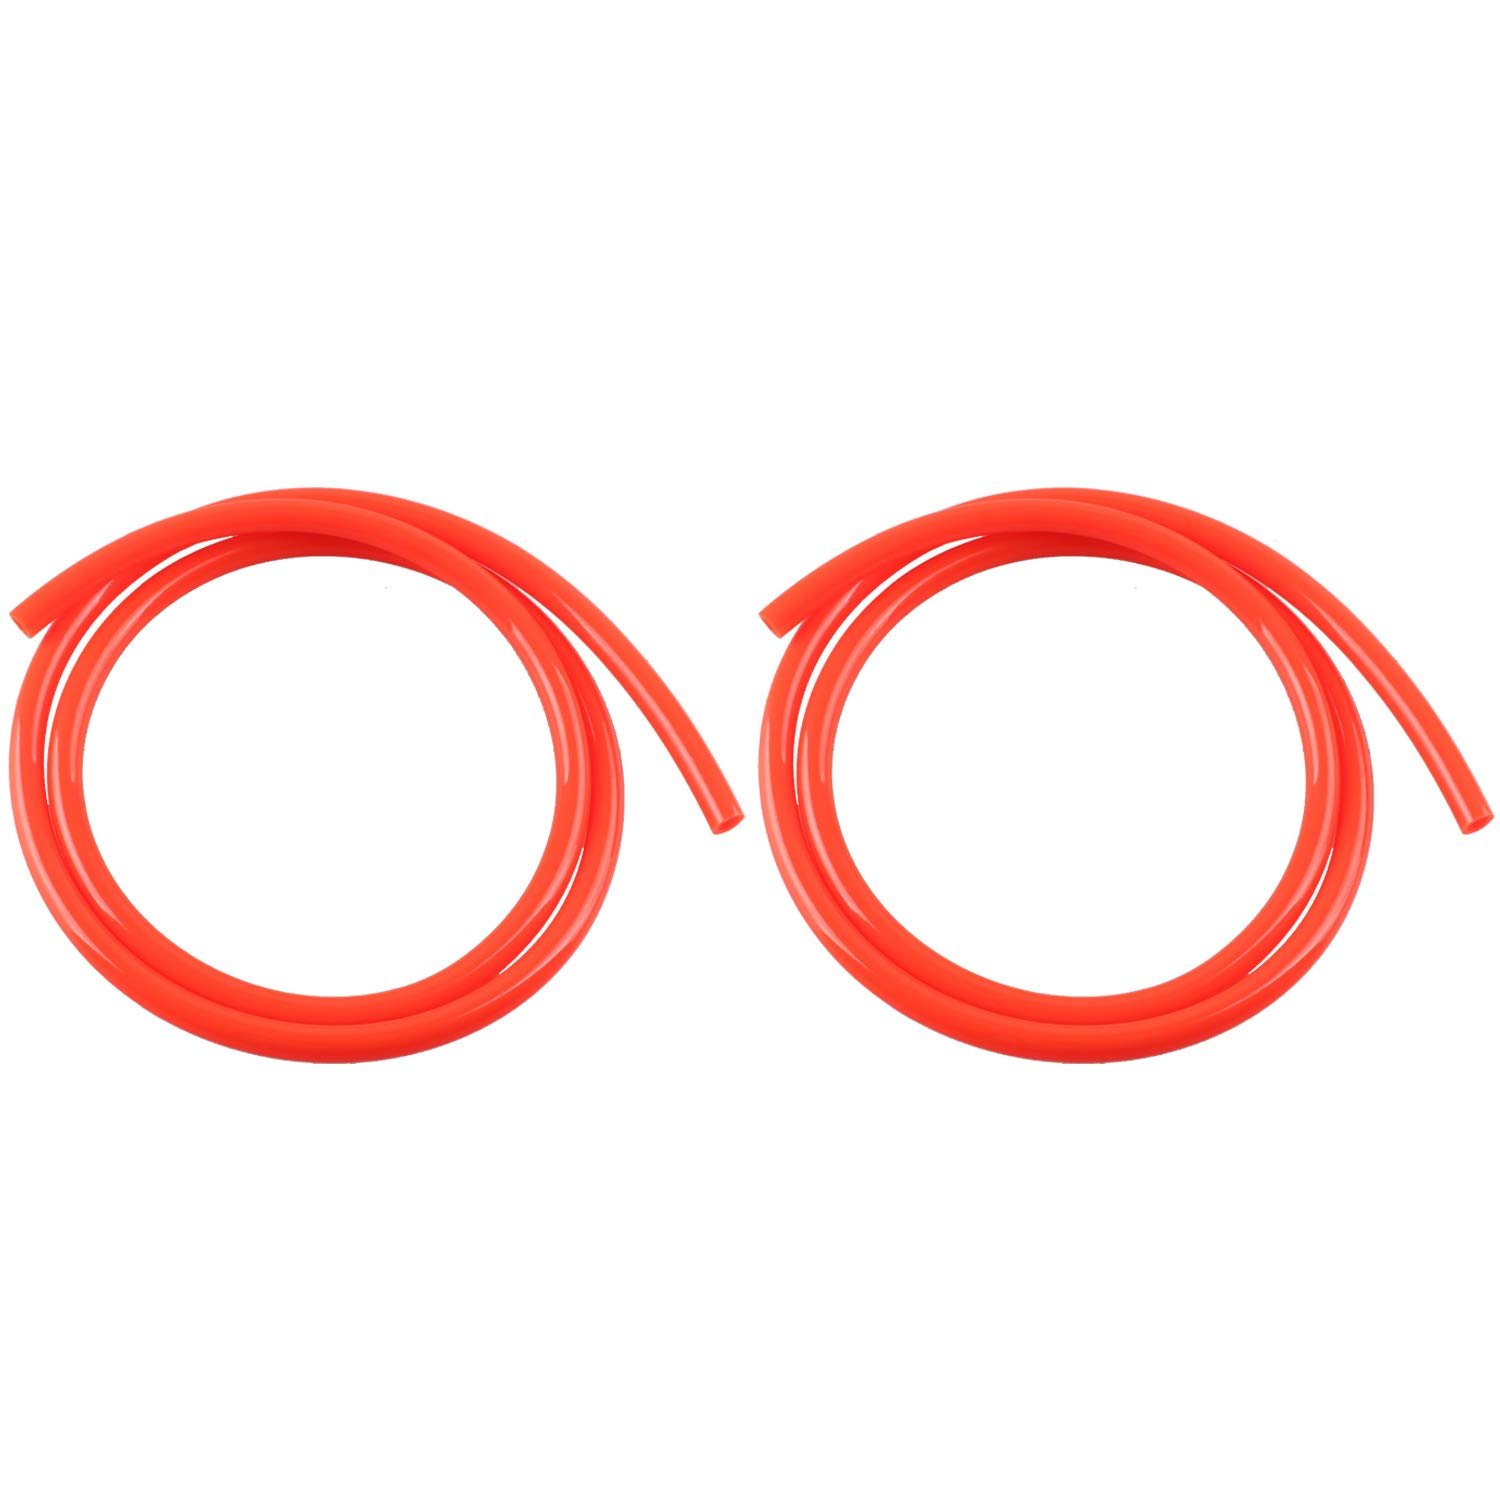 Keenso 1M Colorful Gas Petrol Fuel Line Hose Tube Pipe red Petrol 1//4 inch for Motorcycle Dirt Pit Bike ATV Snowmobile PWC Jet Ski Polyurethane